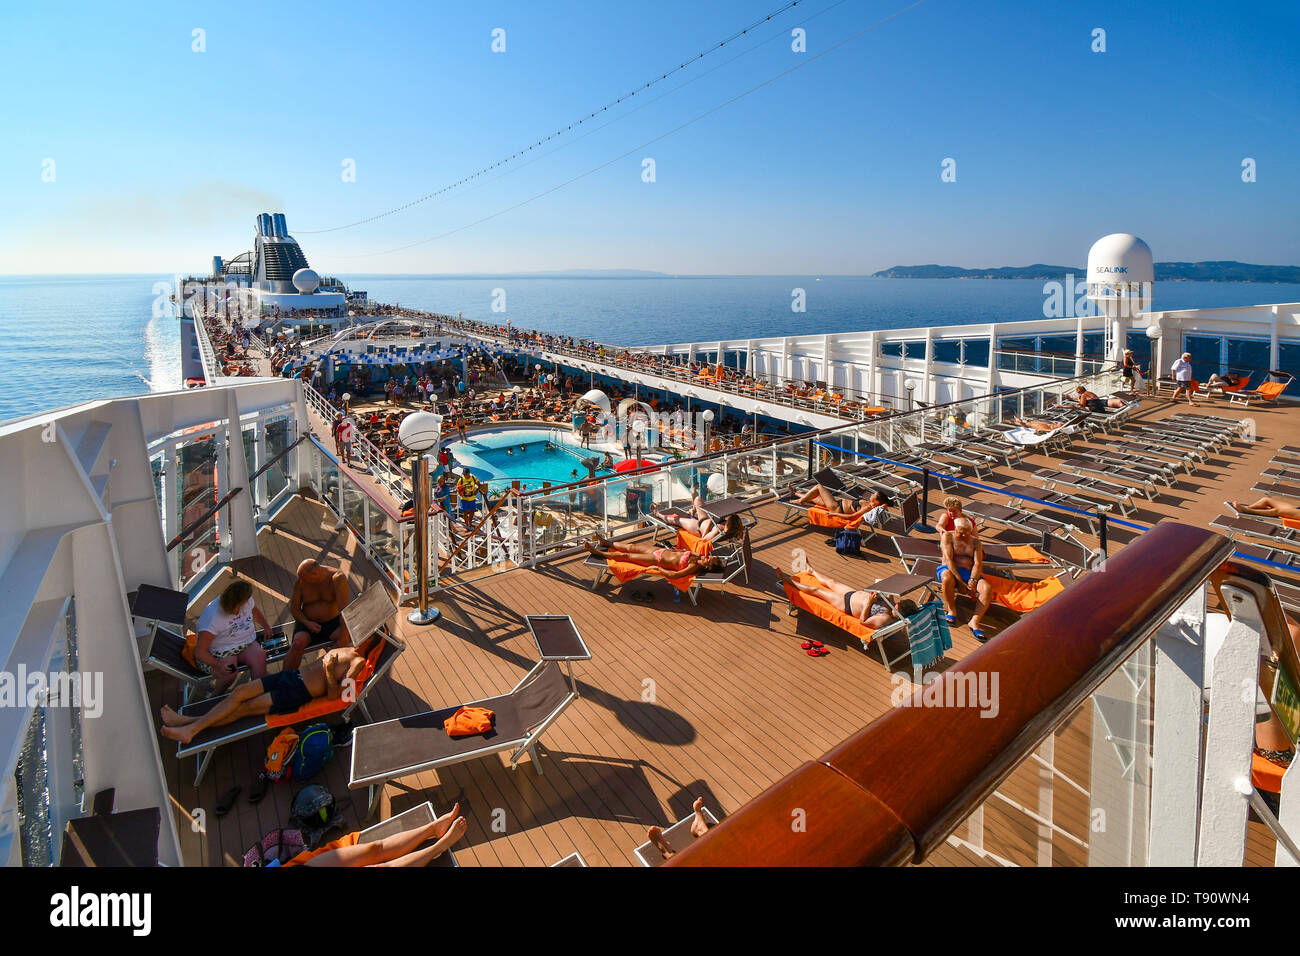 A large cruise ship with tourists on deck approaches the island of Corfu Greece on a summer day in the Ionian Sea. Stock Photo